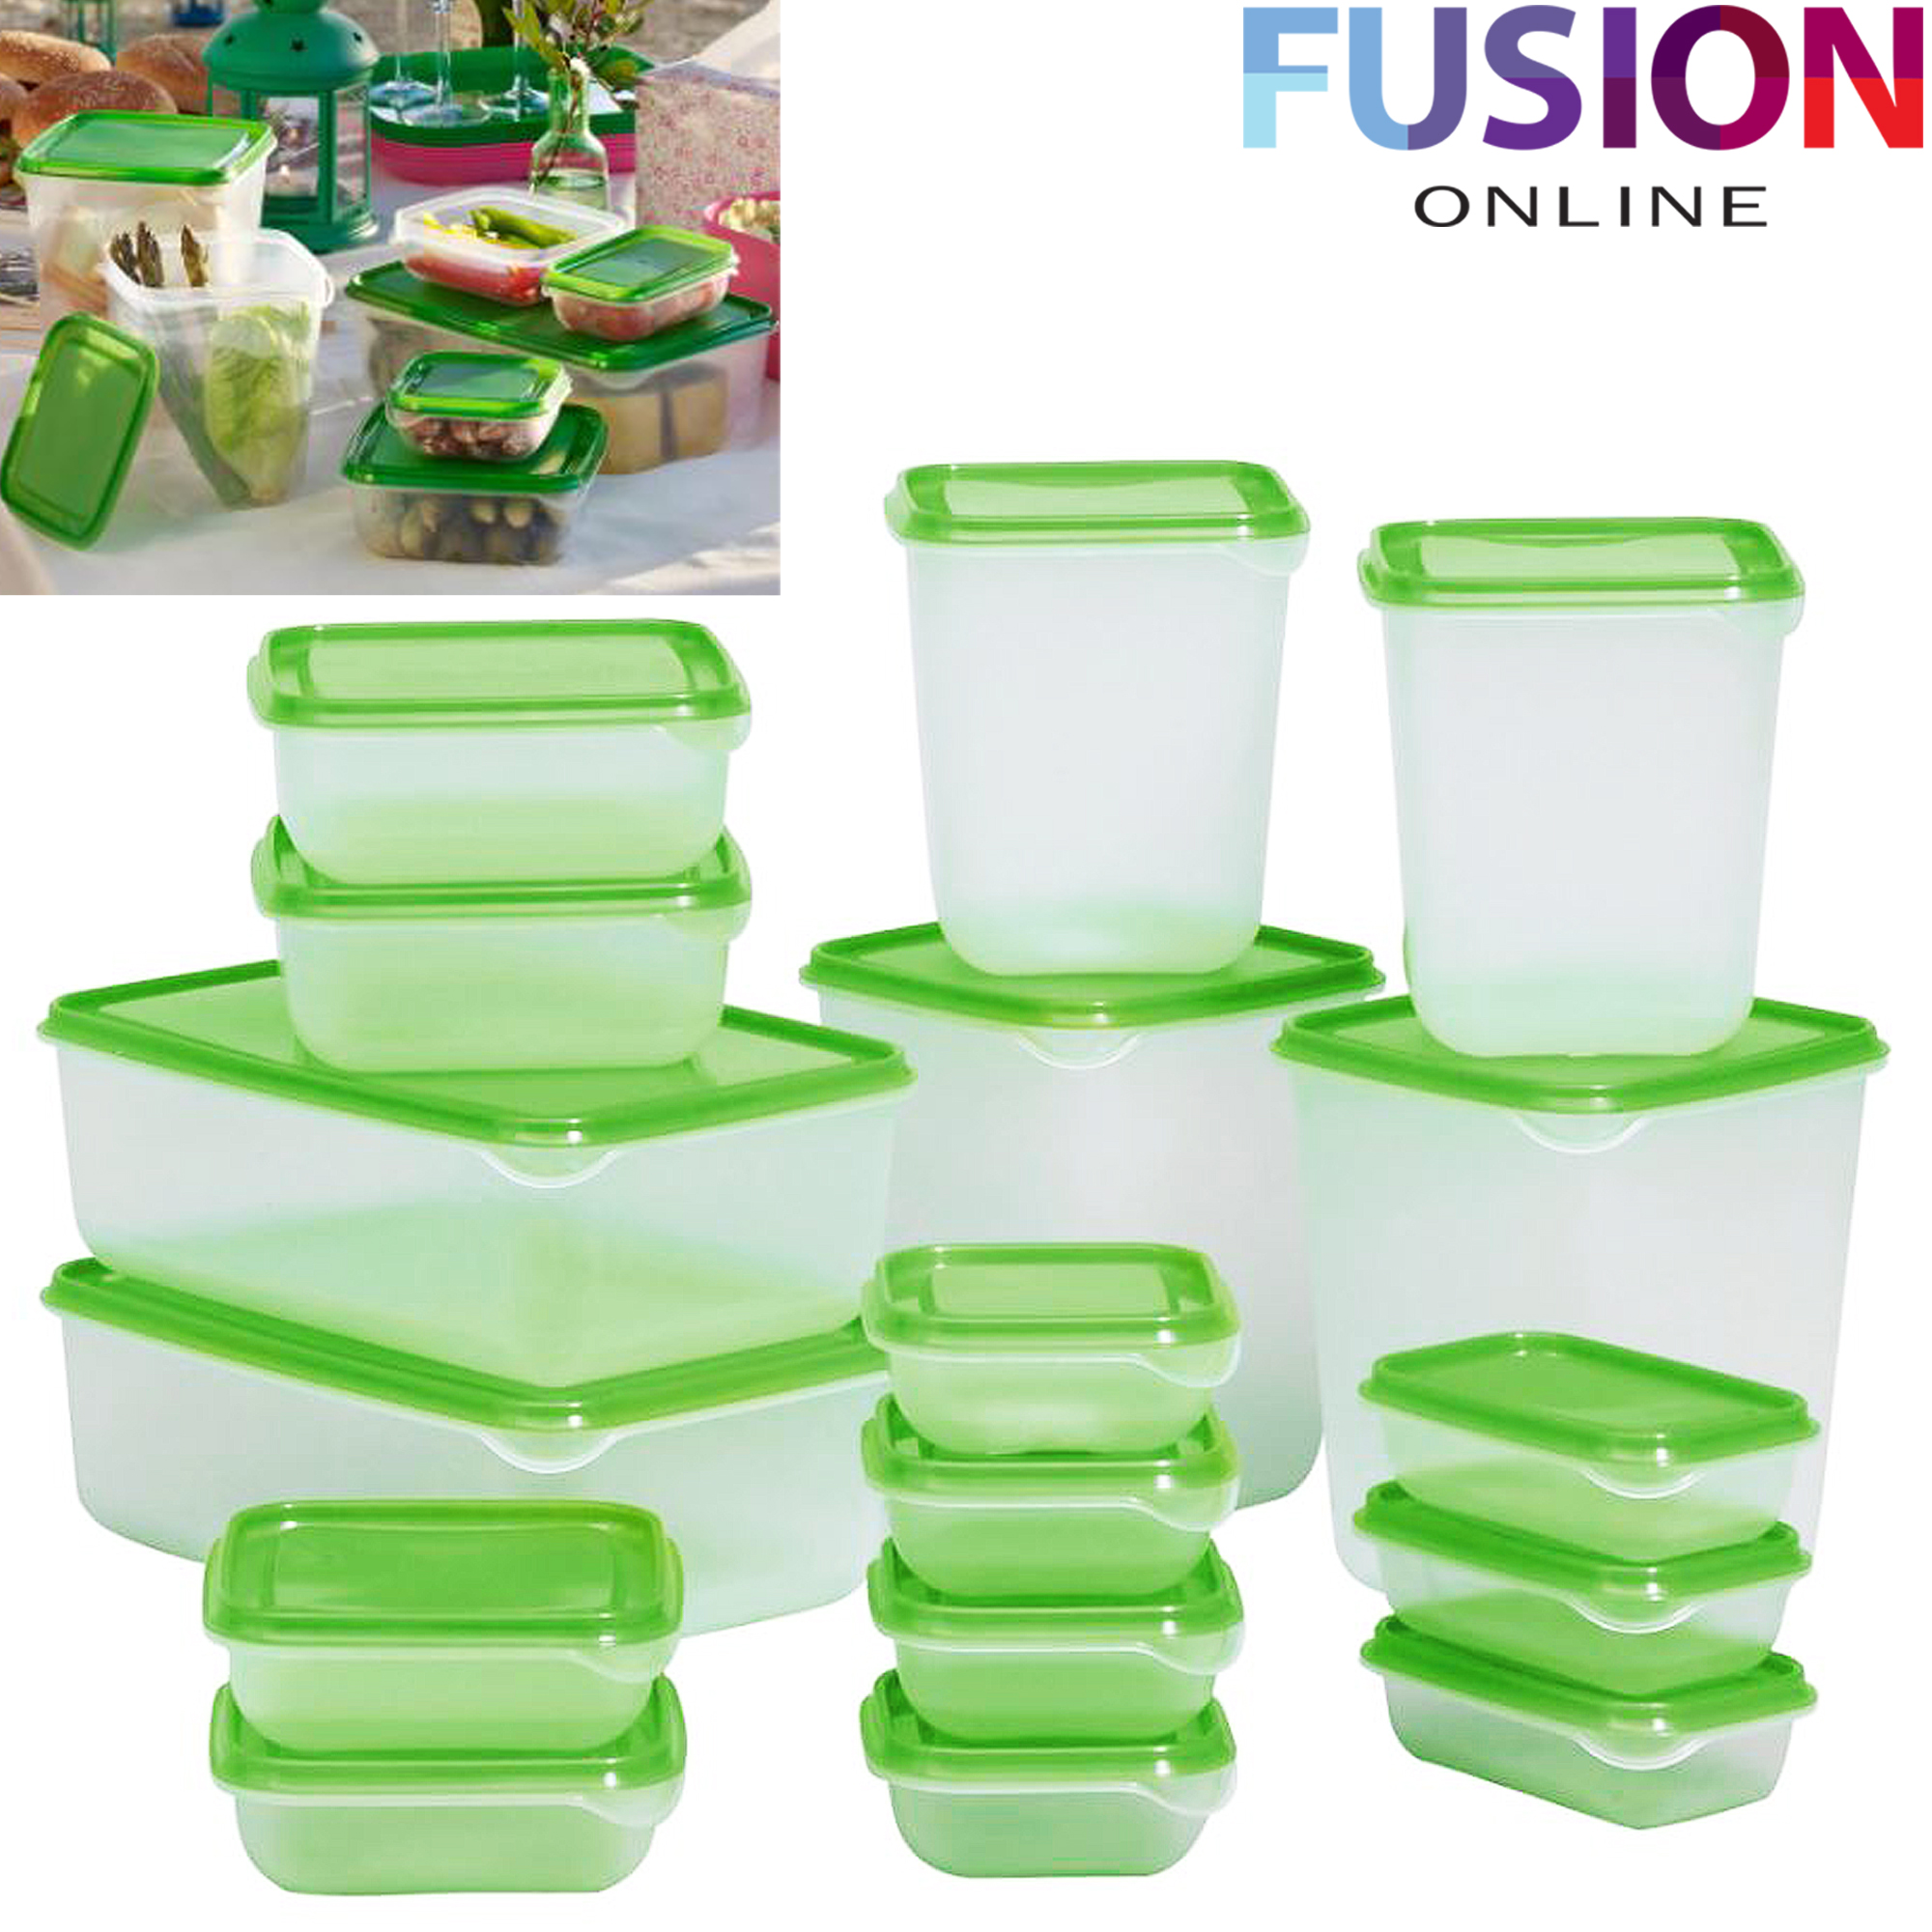 Ikea Pruta 17 Pcs Green Plastic Food Containers Storer